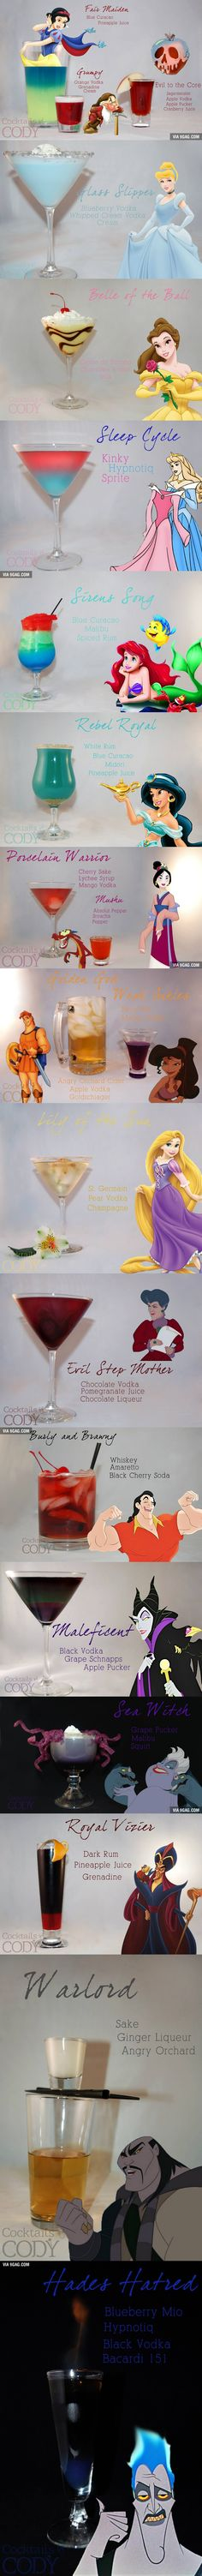 16 Disney Themed Cocktails You Will Want To Try